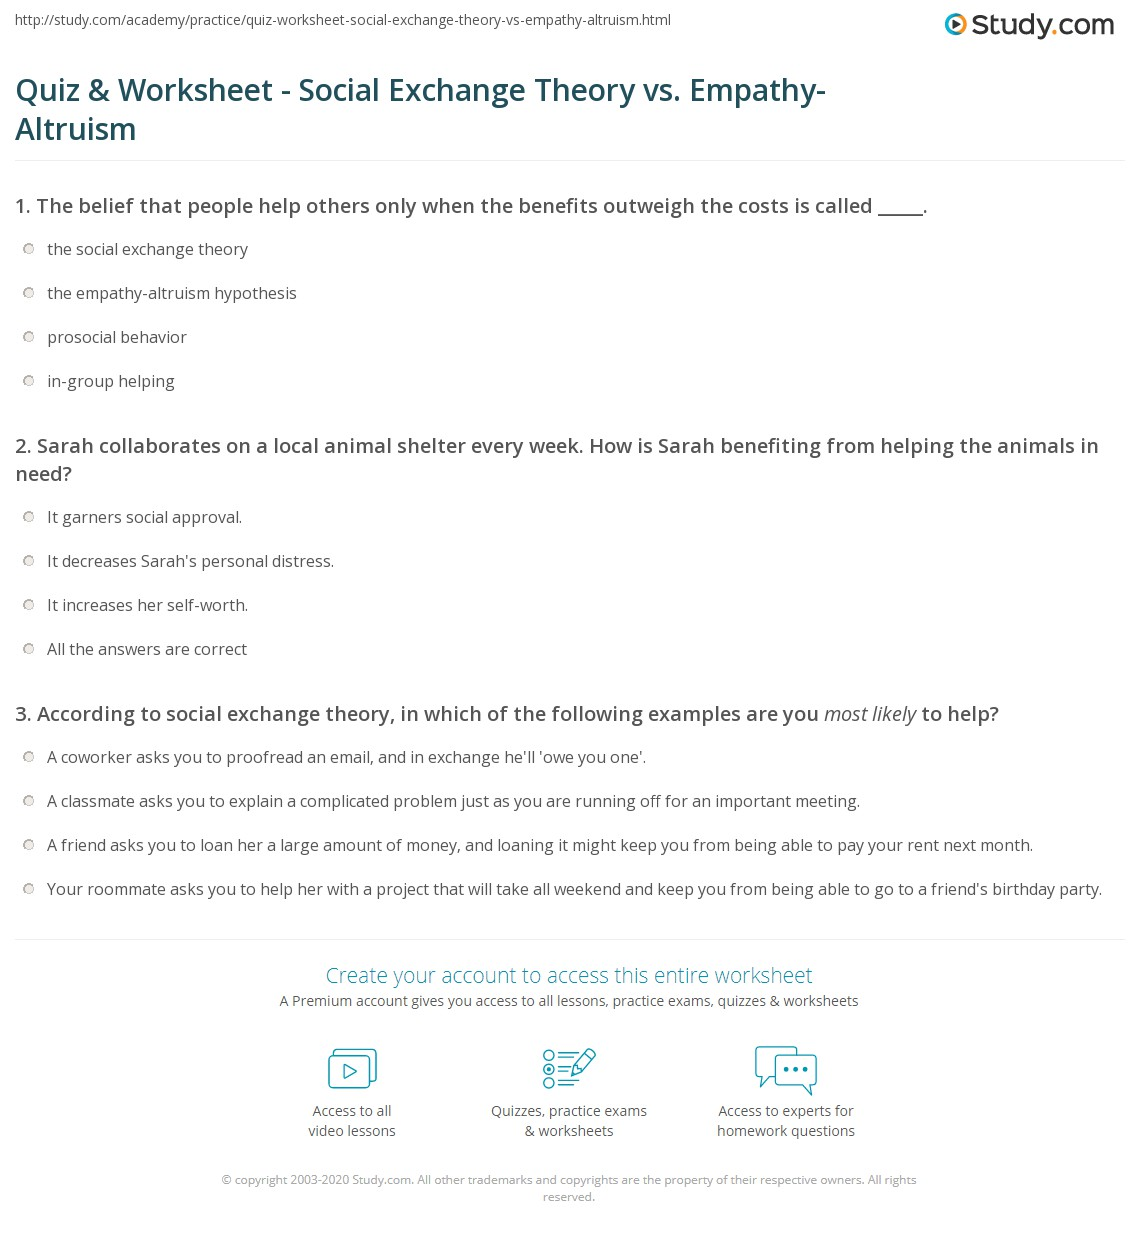 quiz worksheet social exchange theory vs empathy altruism  empathy altruism worksheet